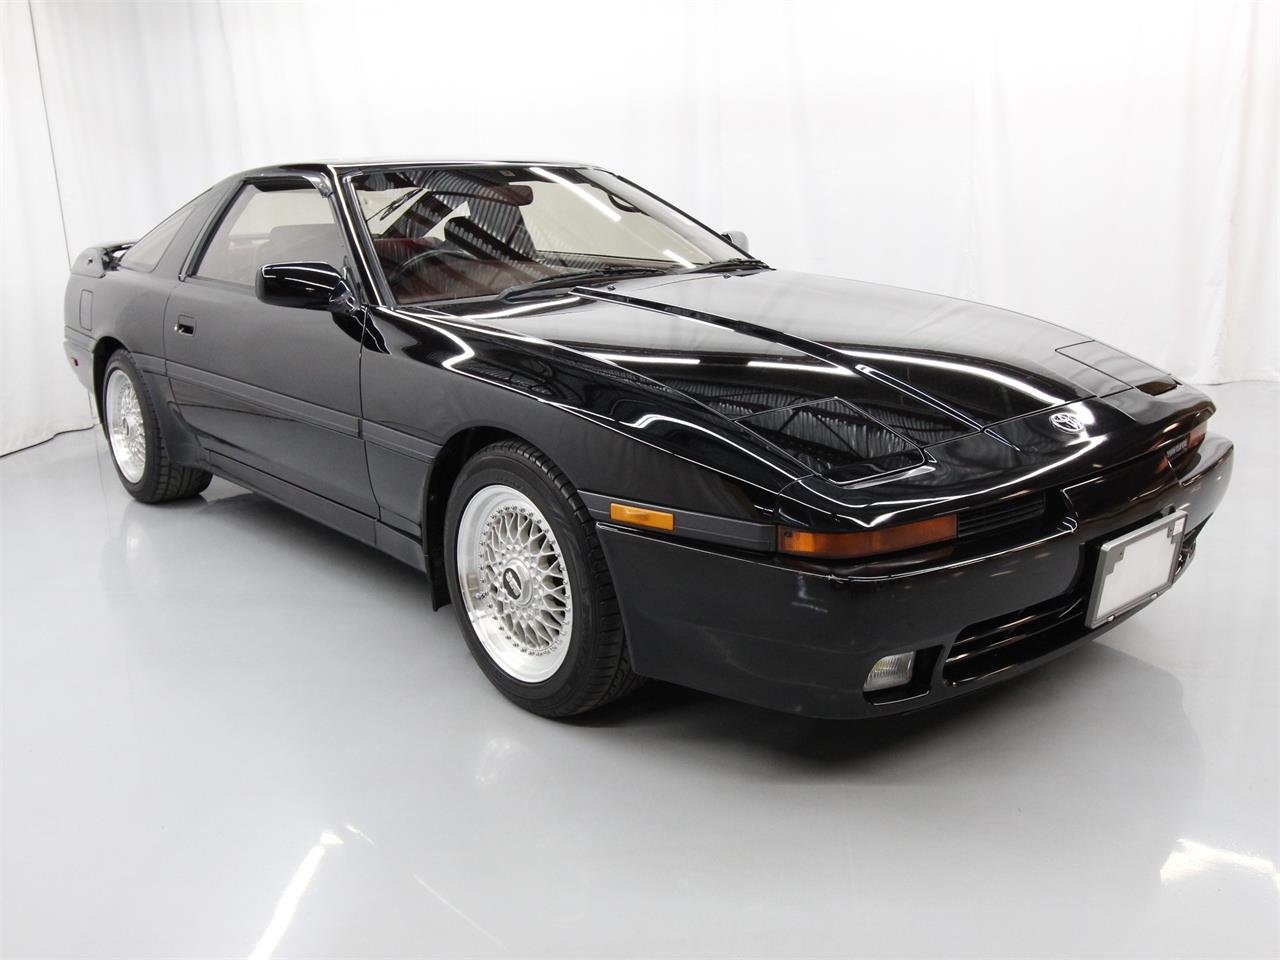 Large Picture of '91 Toyota Supra located in Christiansburg Virginia Offered by Duncan Imports & Classic Cars - Q9SQ